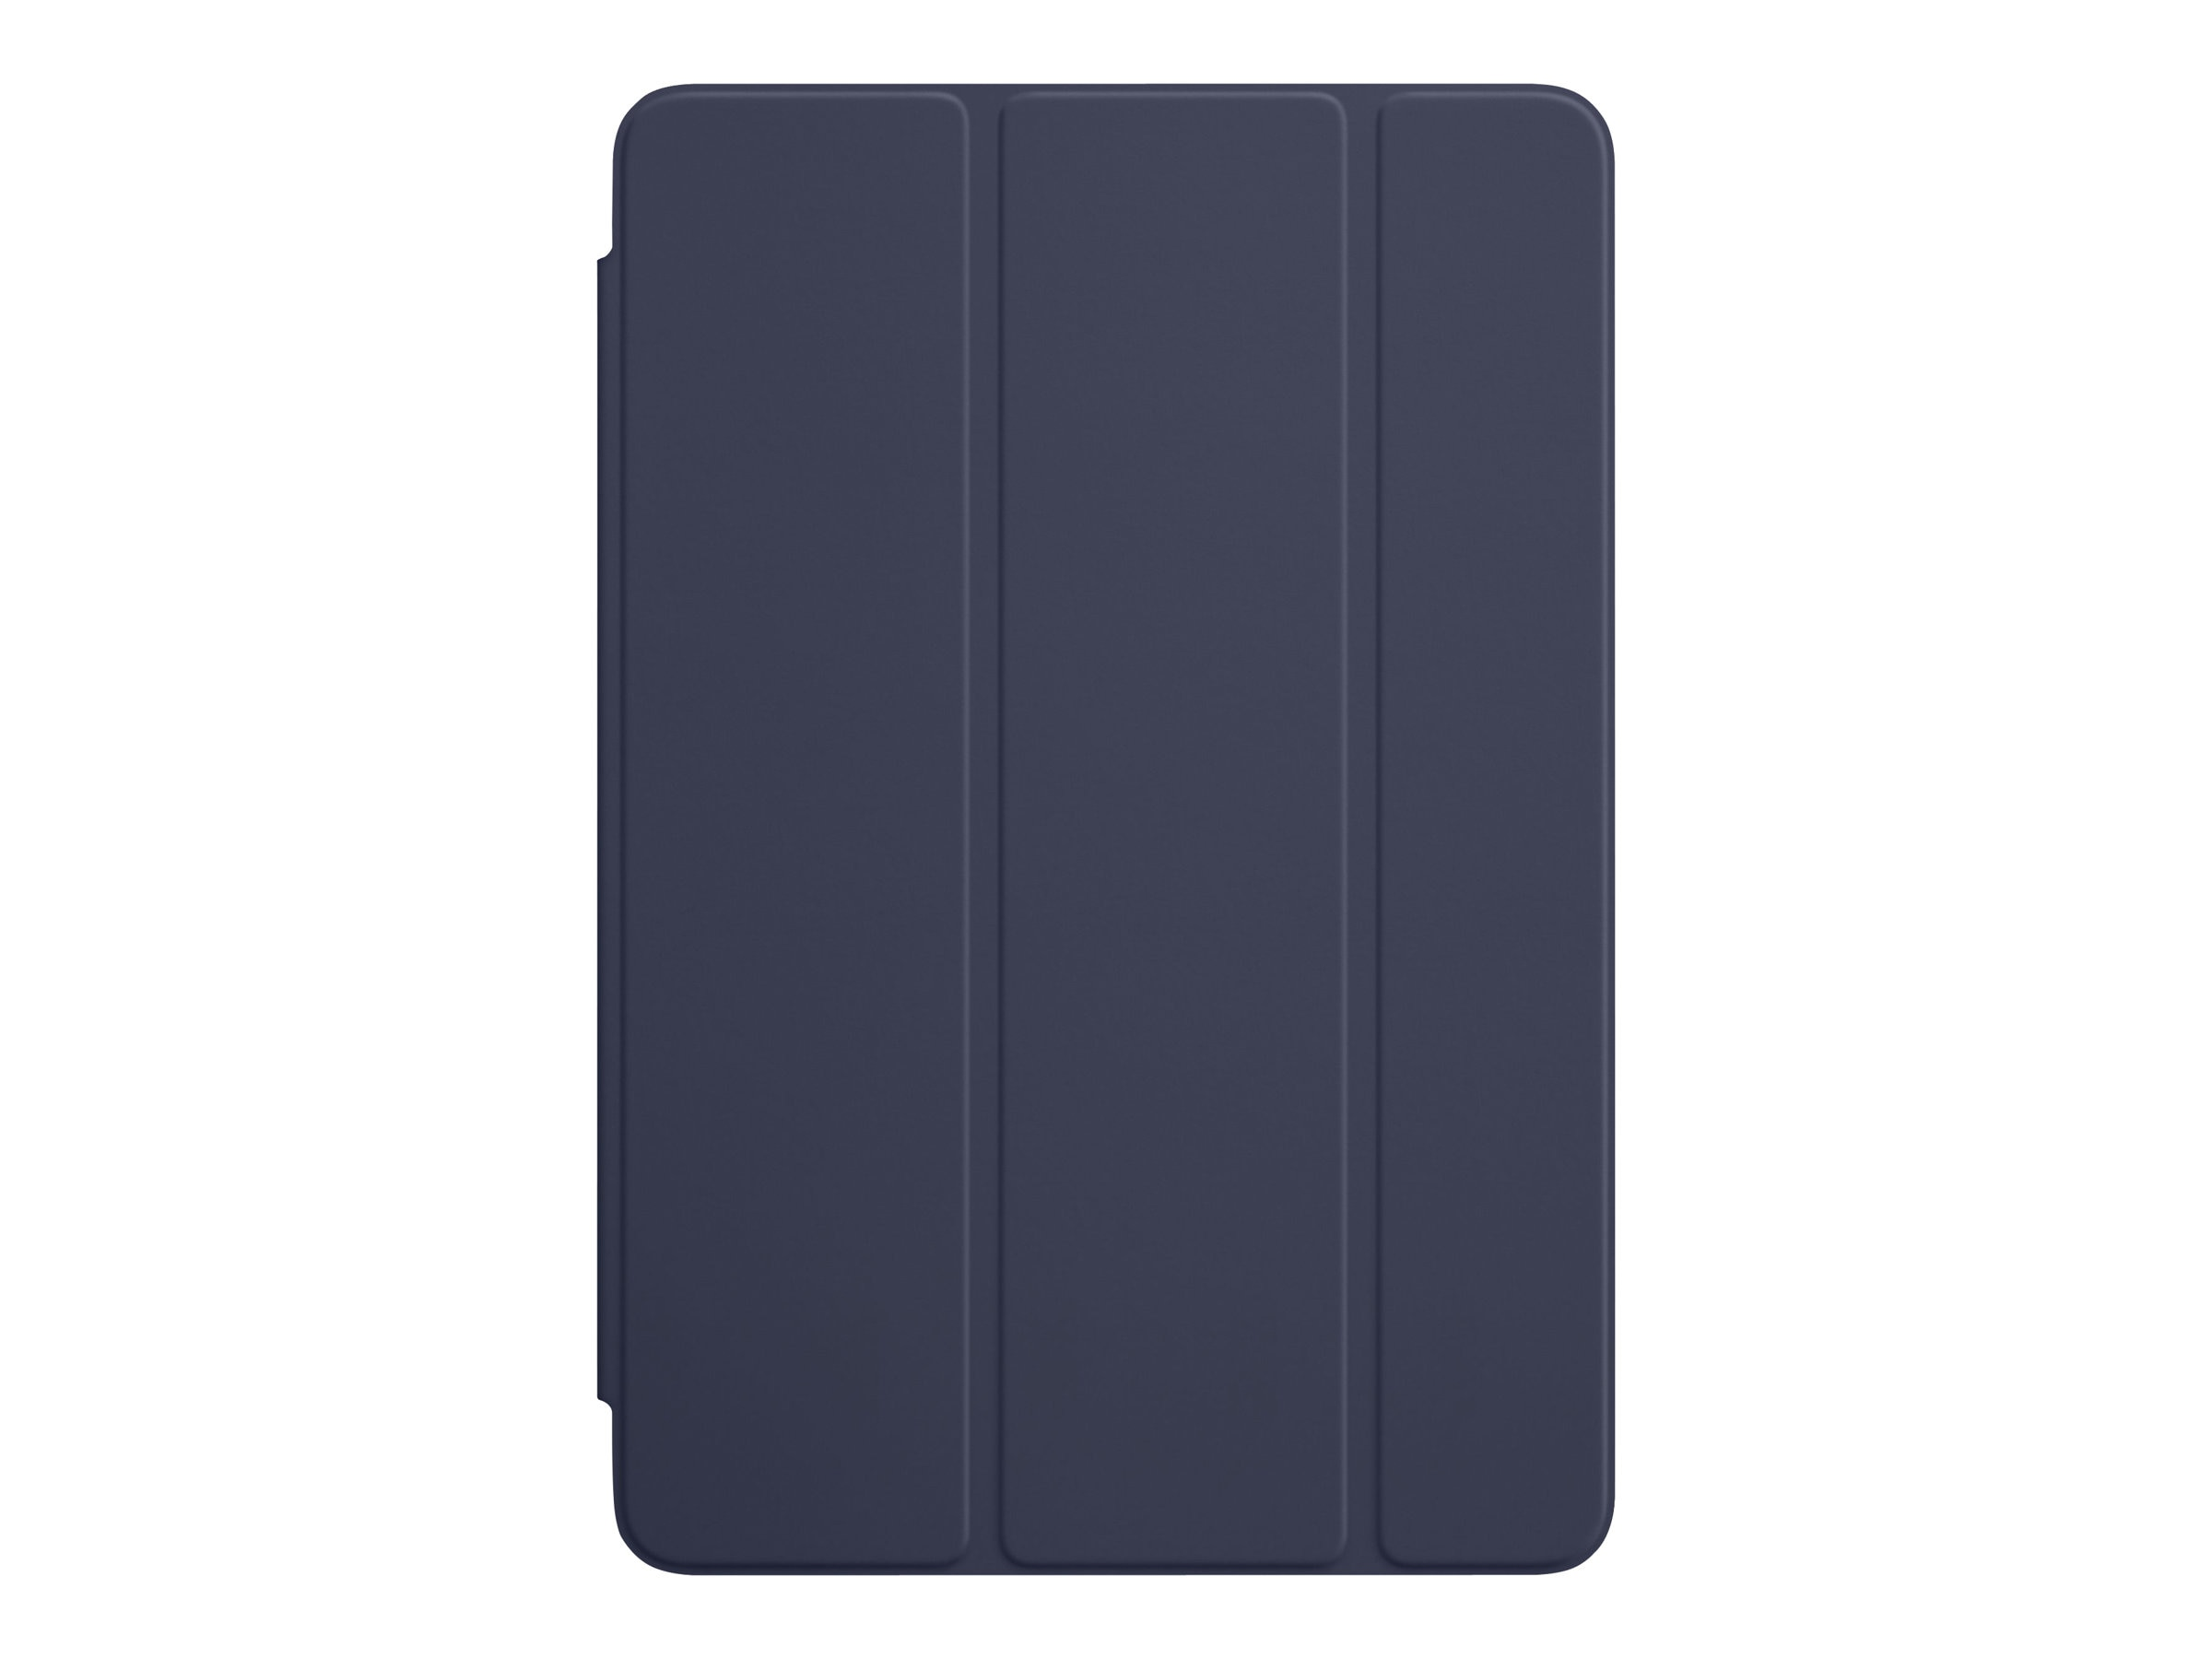 Apple iPad mini 4 Smart Cover, Midnight Blue, MKLX2ZM/A, 31071506, Carrying Cases - Tablets & eReaders